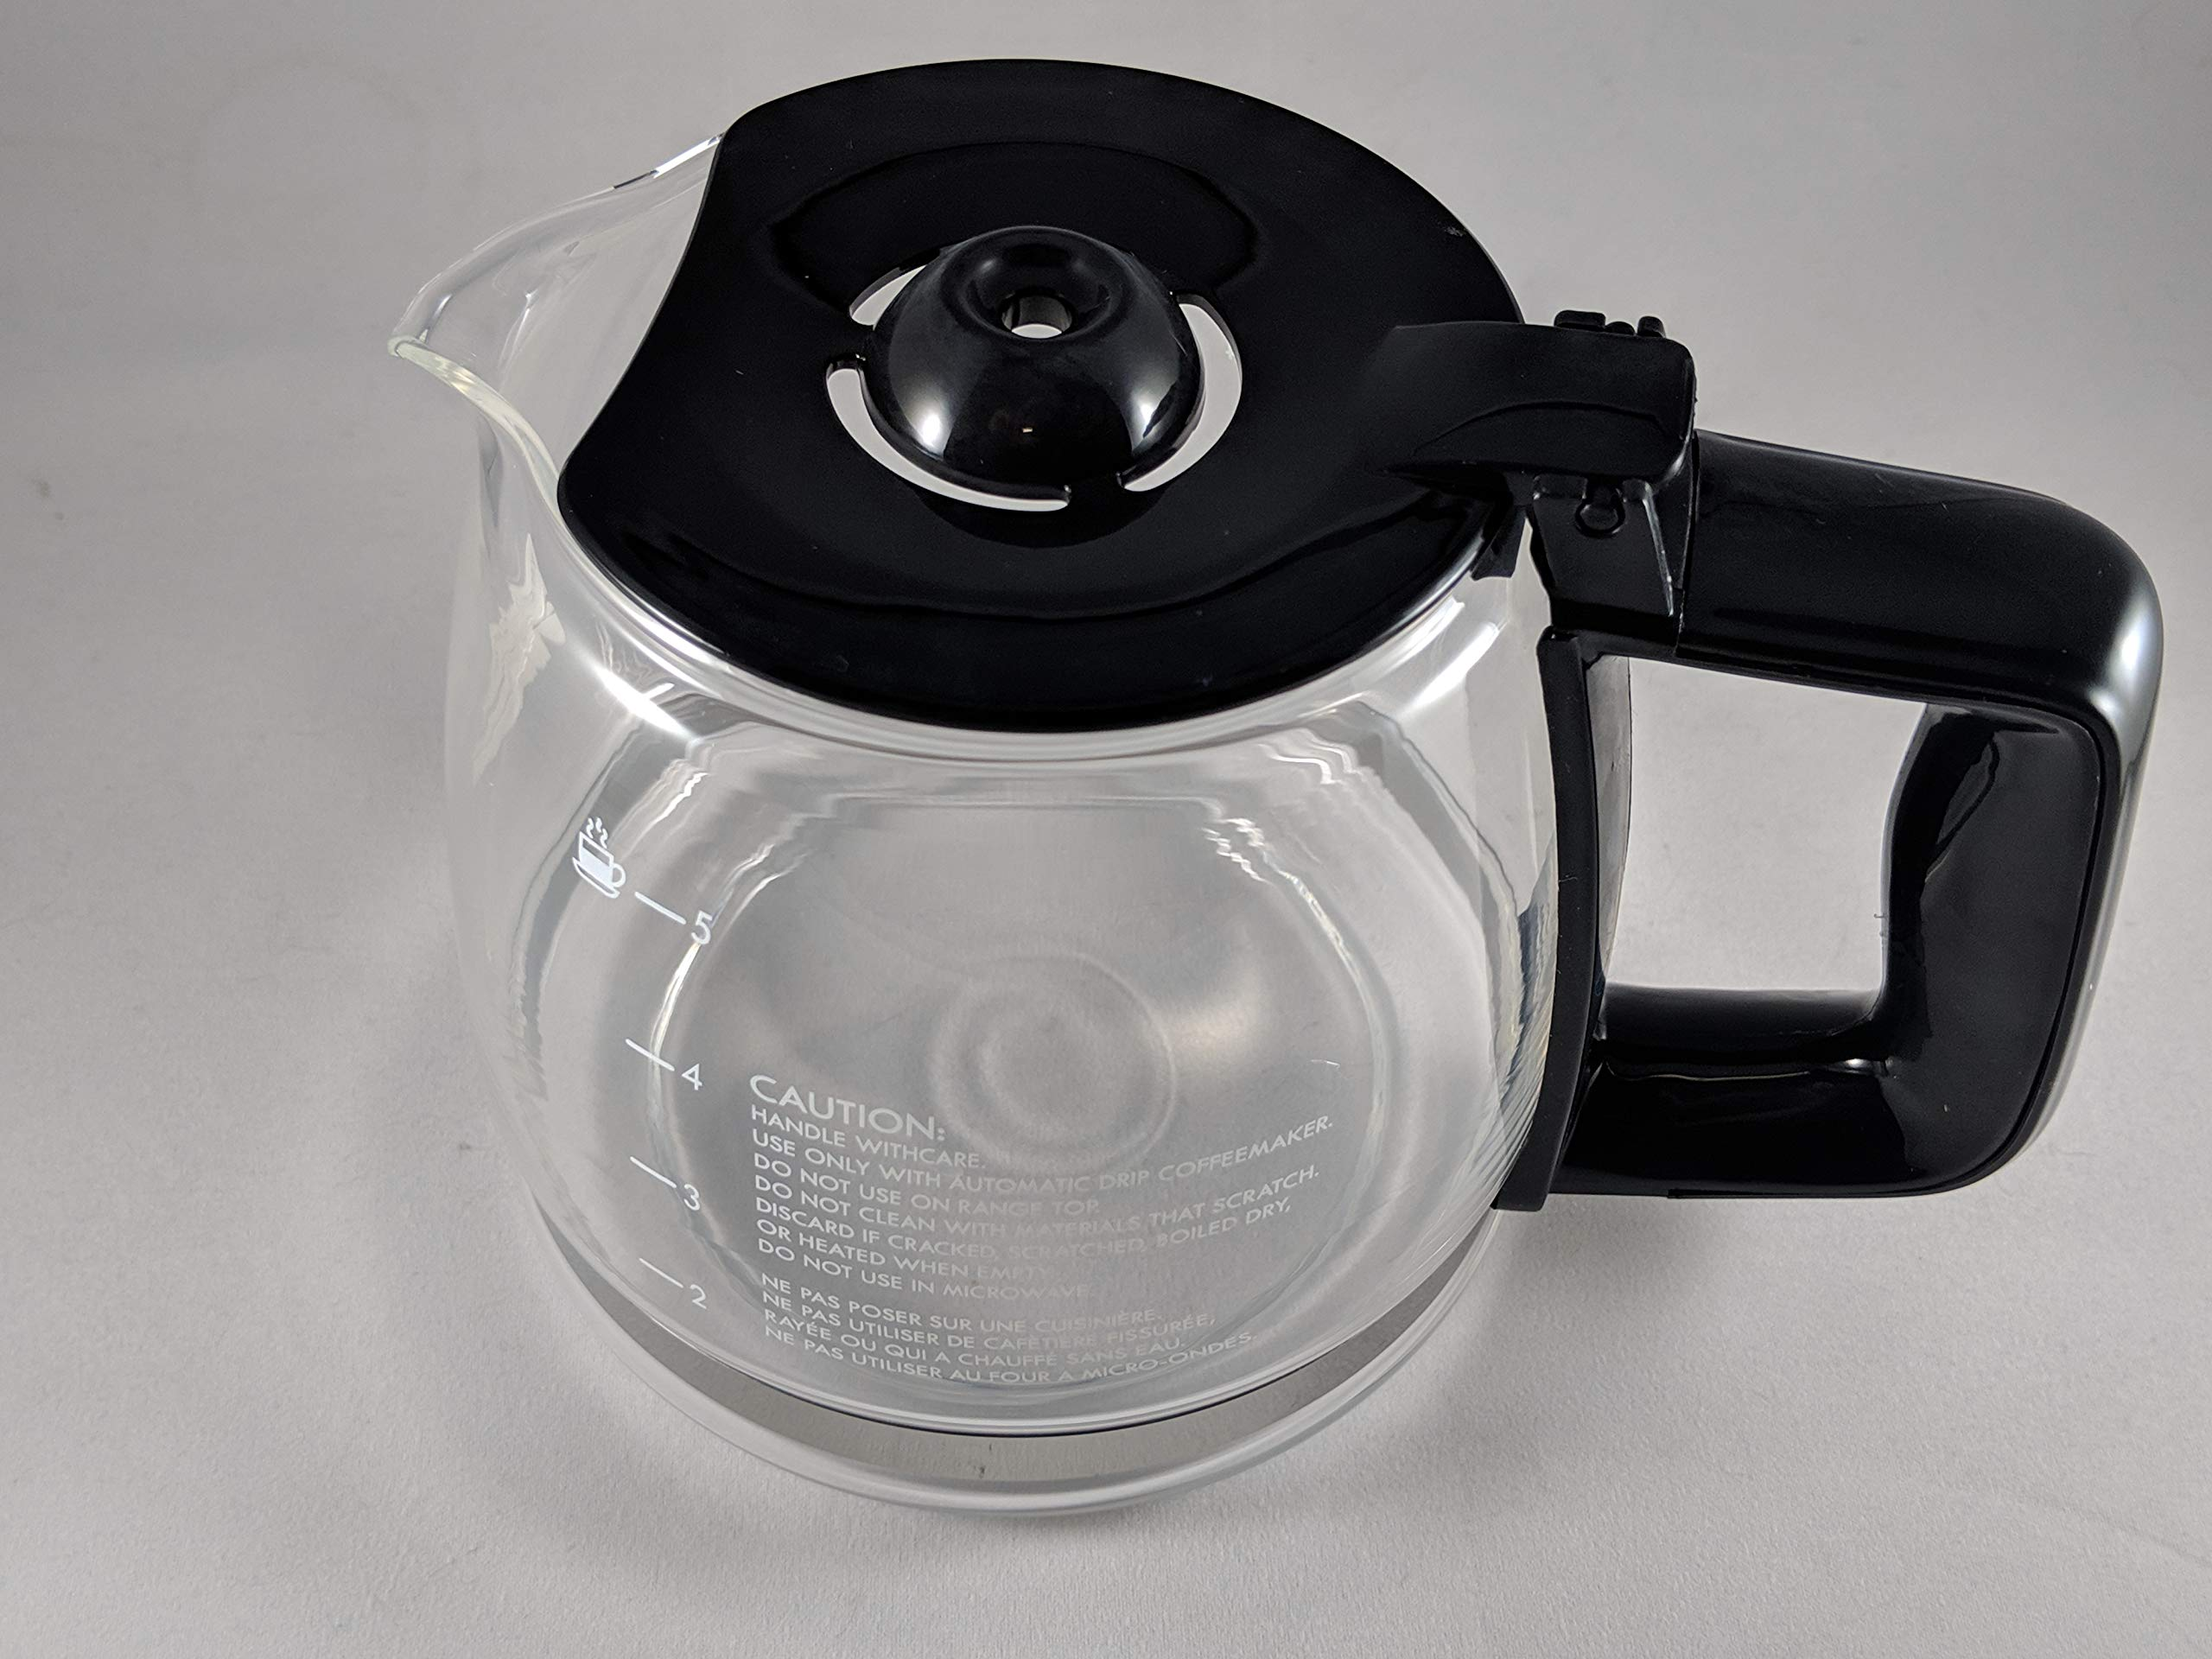 Compatible with Kenmore 100.8050990A 5-cup Coffee Maker Carafe